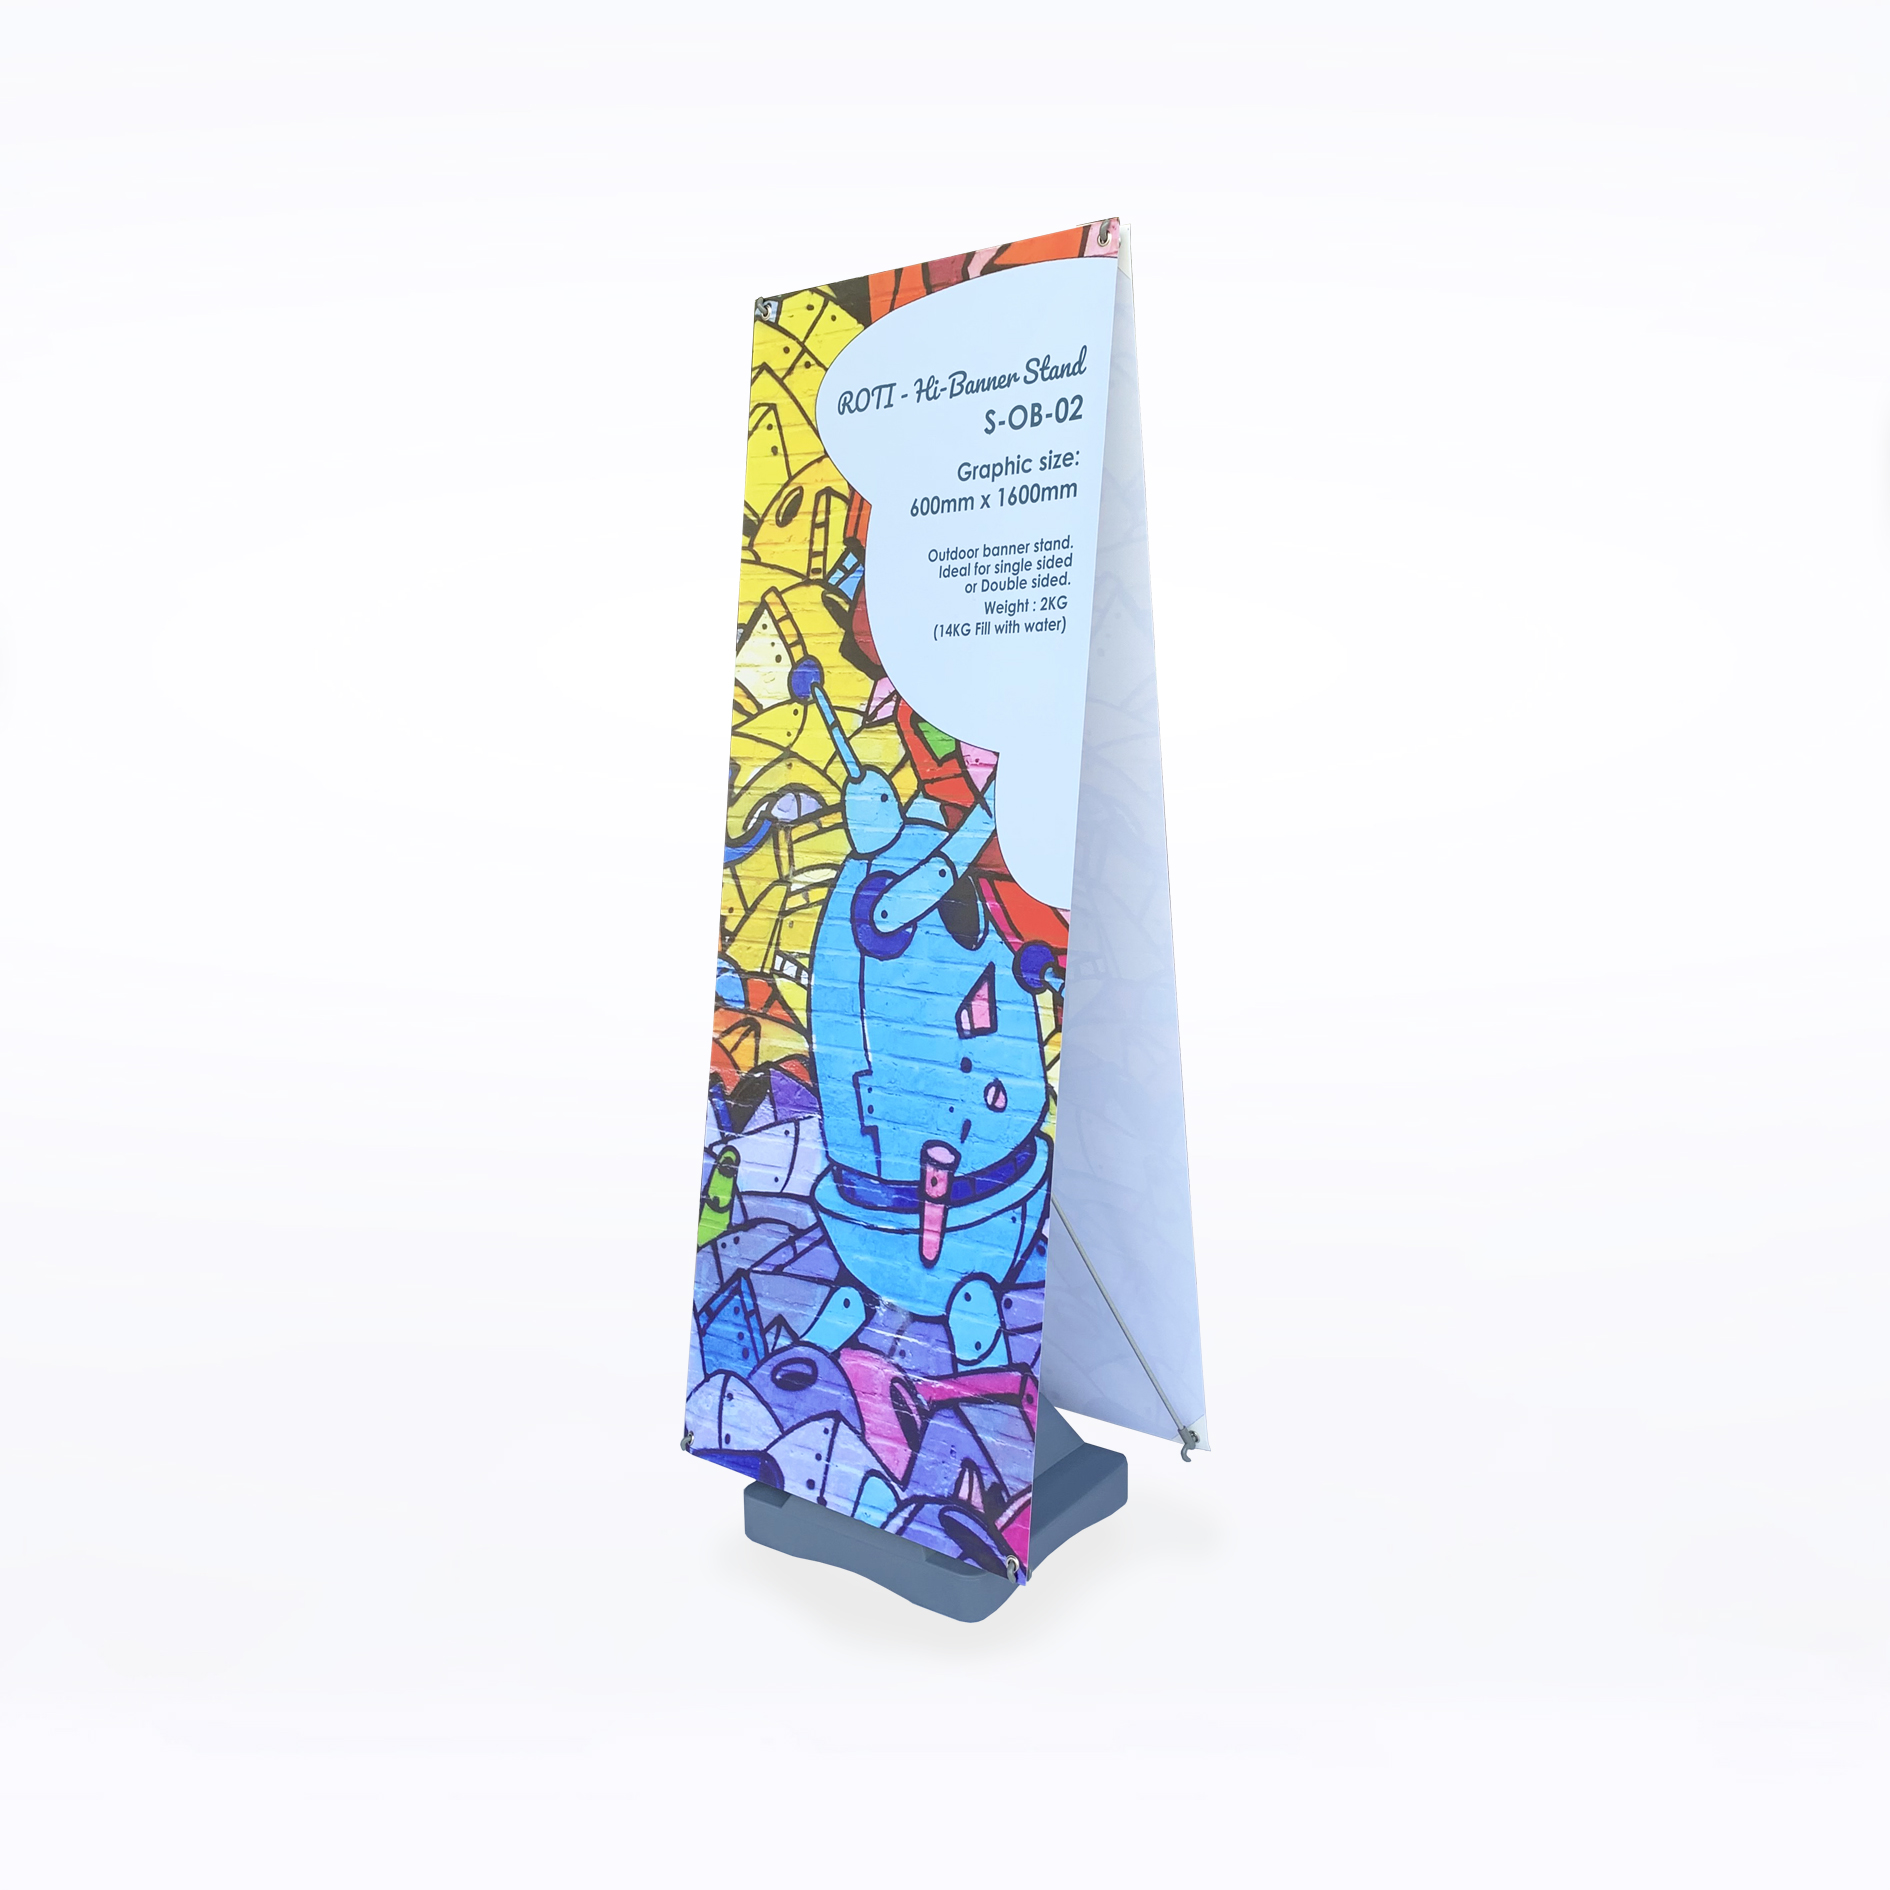 Double Sided - 600mm x 1800mm